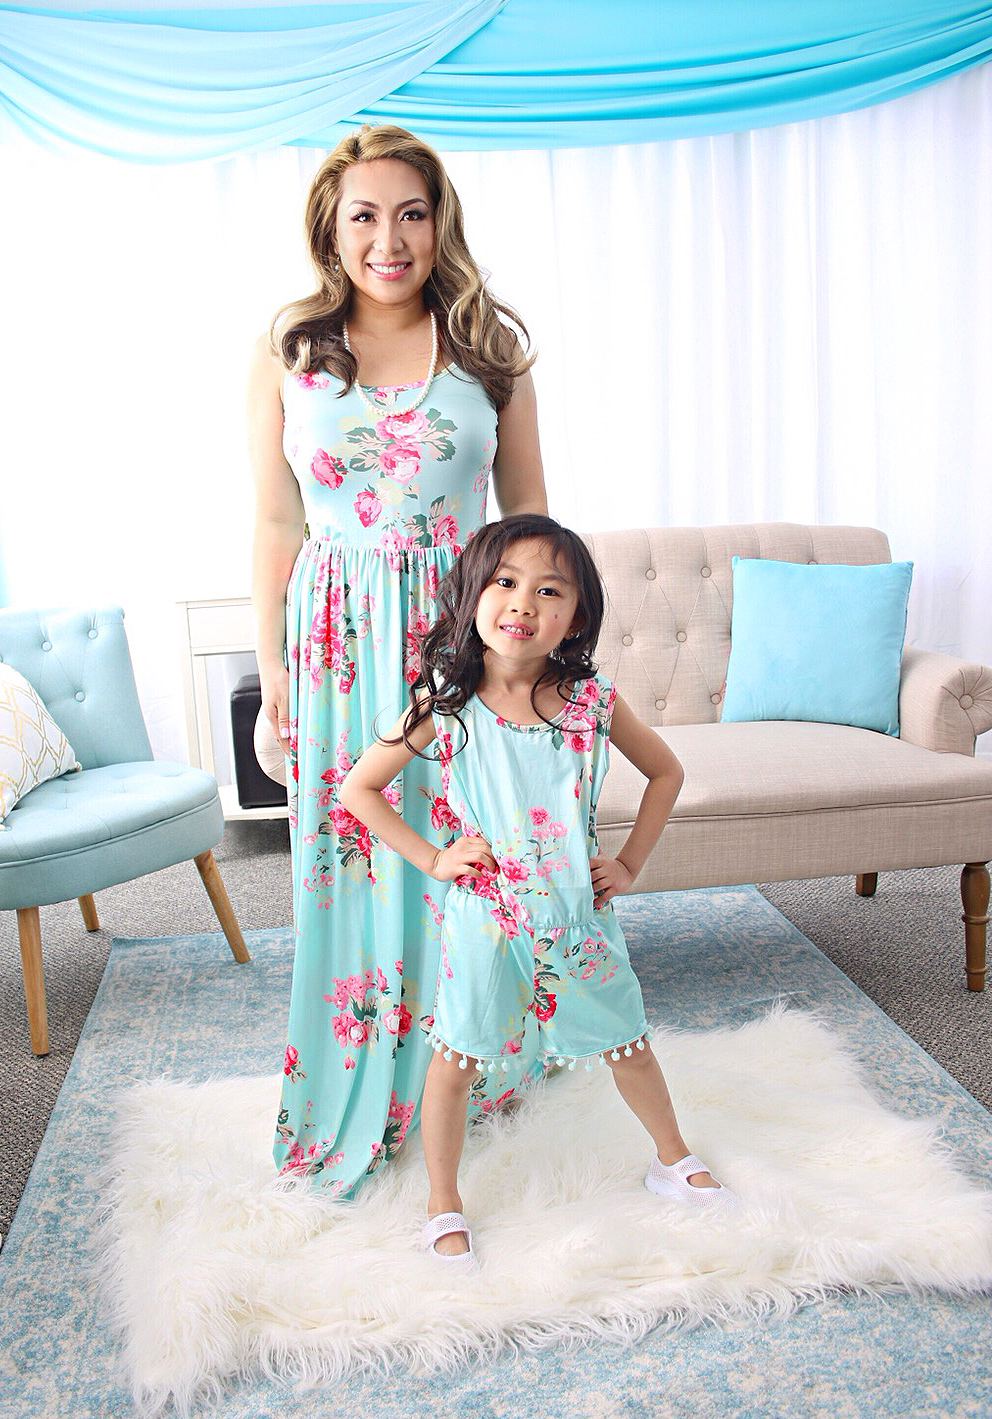 2520c0bf34b53 Mommy & Me Outfit #3 - Floral Maxi Dress & Romper! - A Mom, With Kids